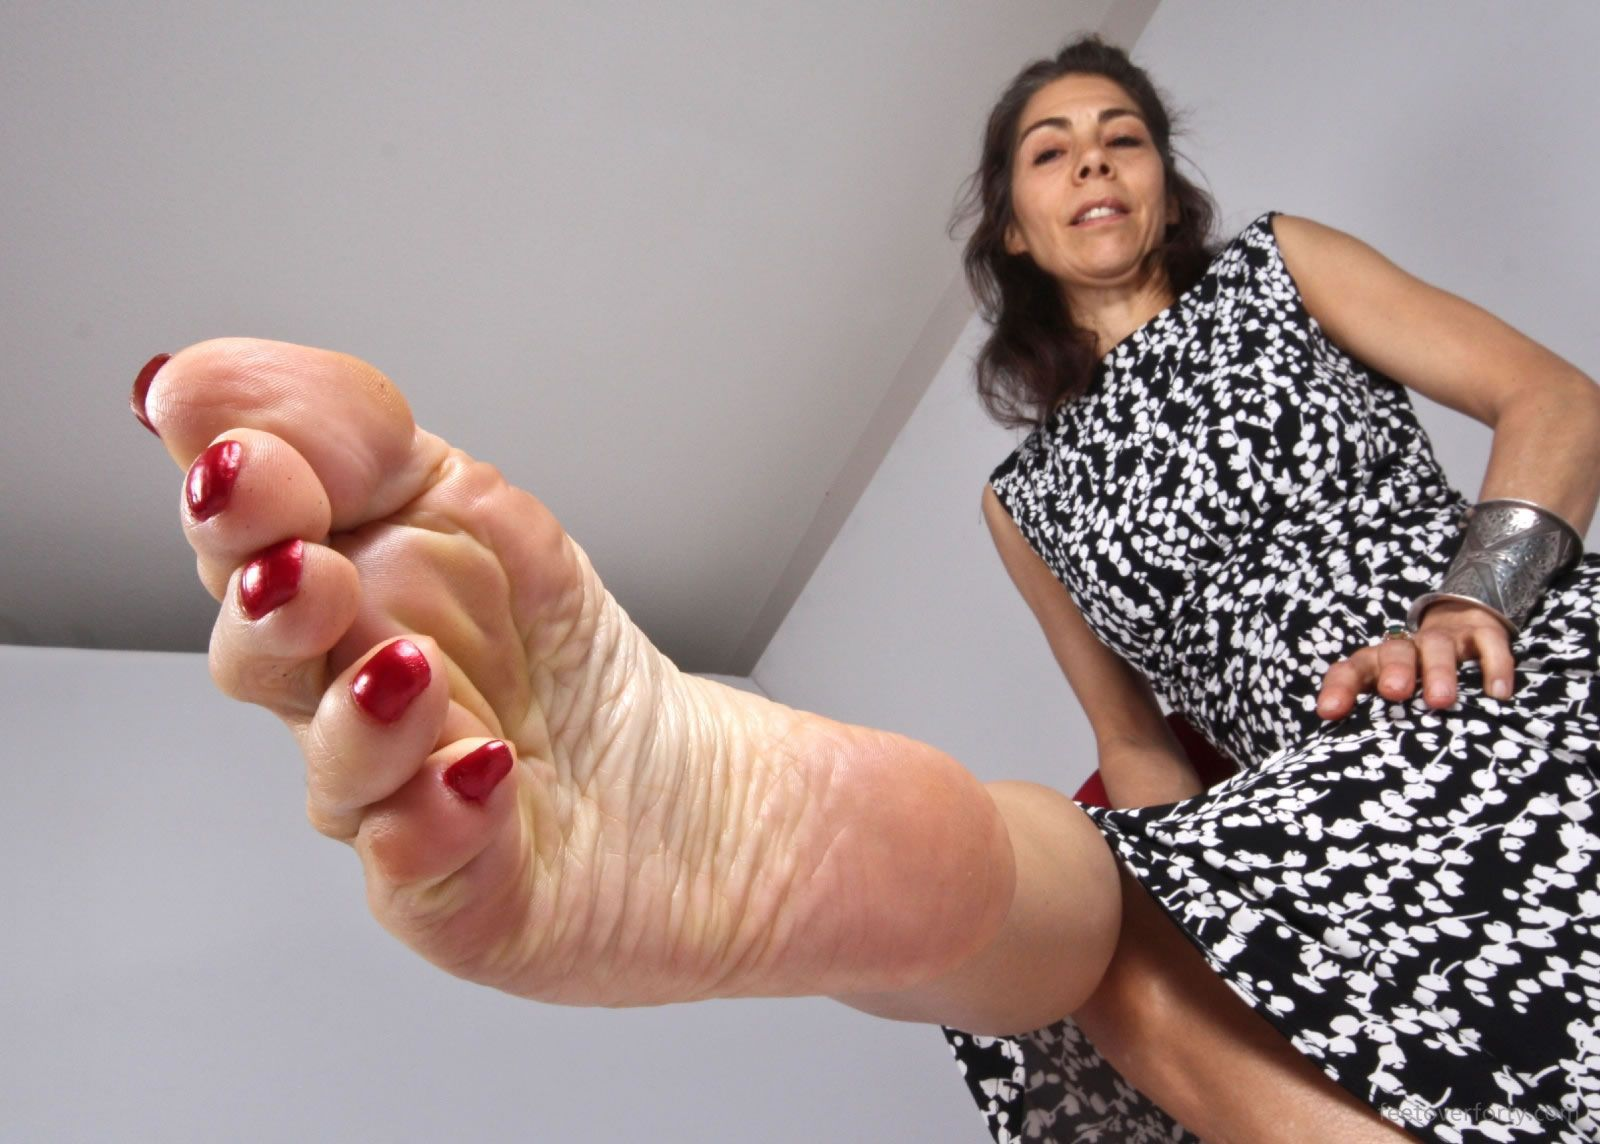 Female foot fetish porn-4973